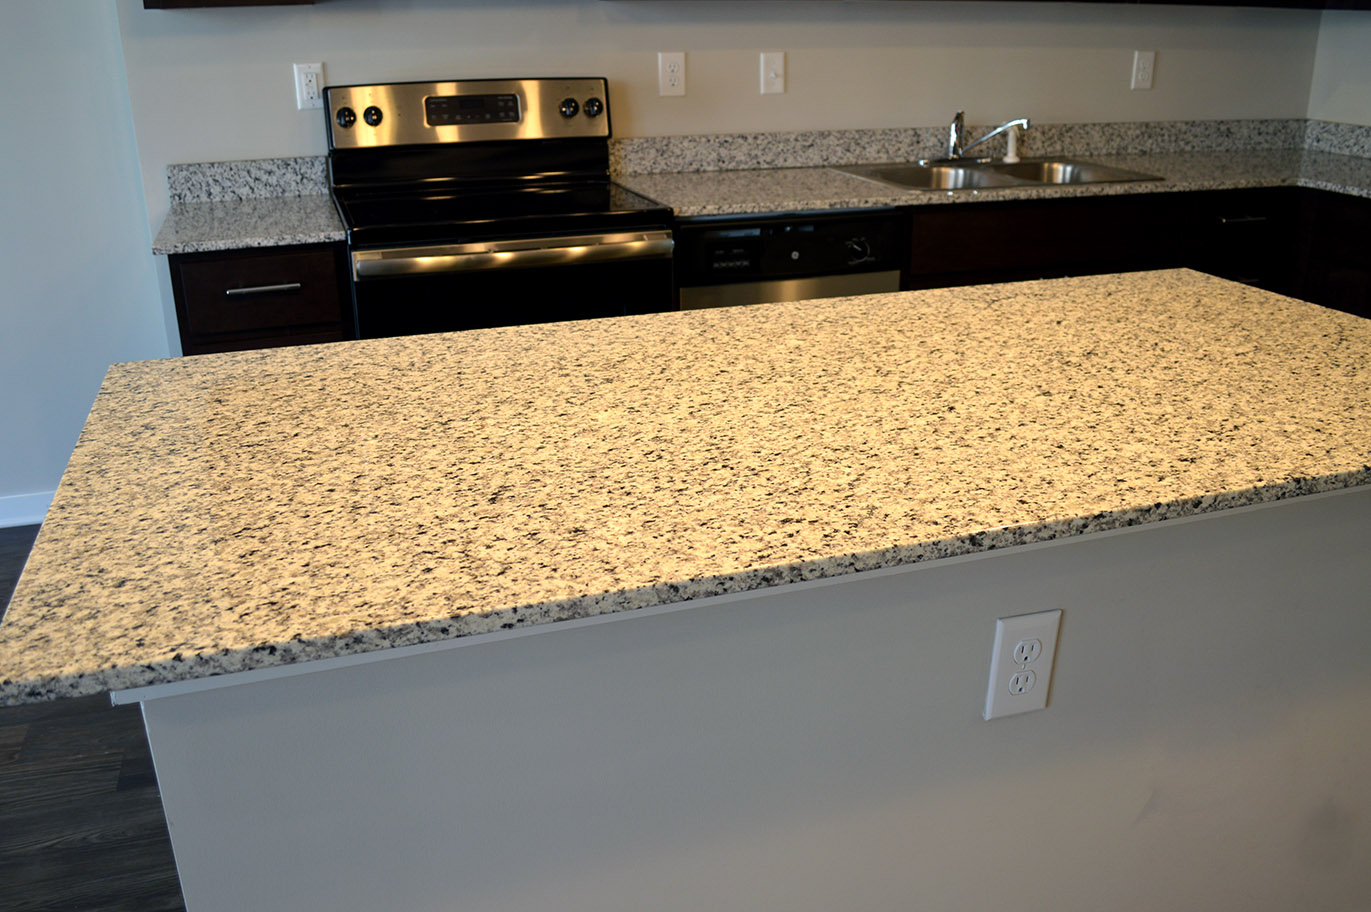 Main & Stone apartments (Greenville, SC) boast luxurious living spaces with high-end touches like this granite countertops by East Coast Granite